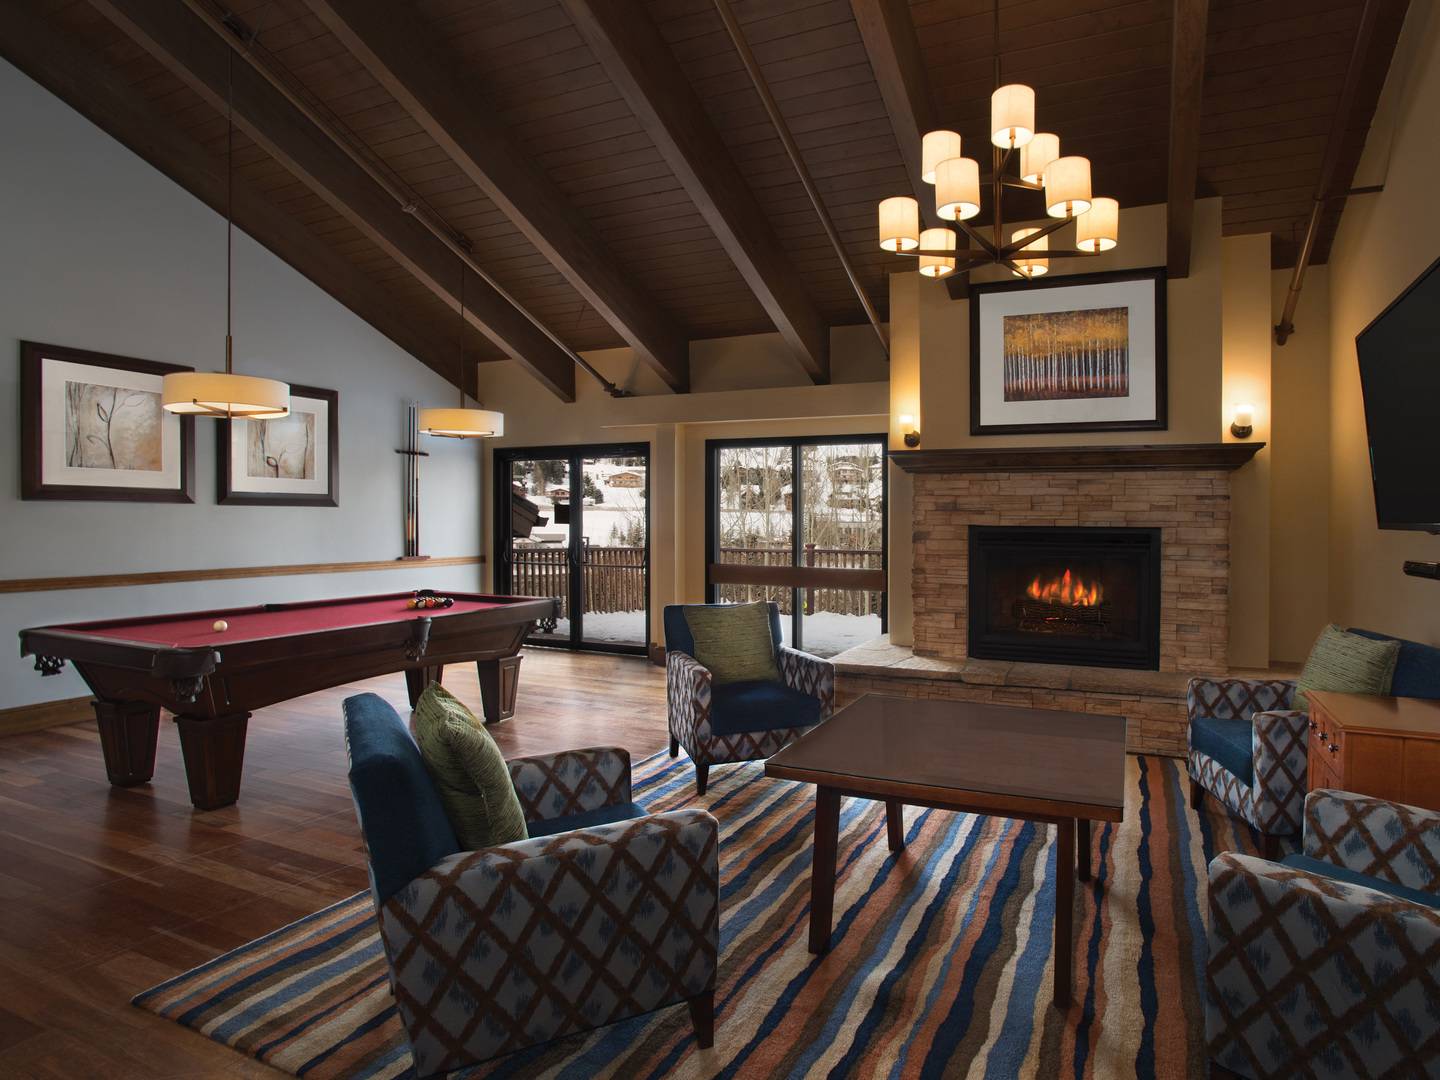 Marriott's StreamSide - Birch Owners Lounge/Billiards. Marriott's StreamSide - Birch is located in Vail, Colorado United States.